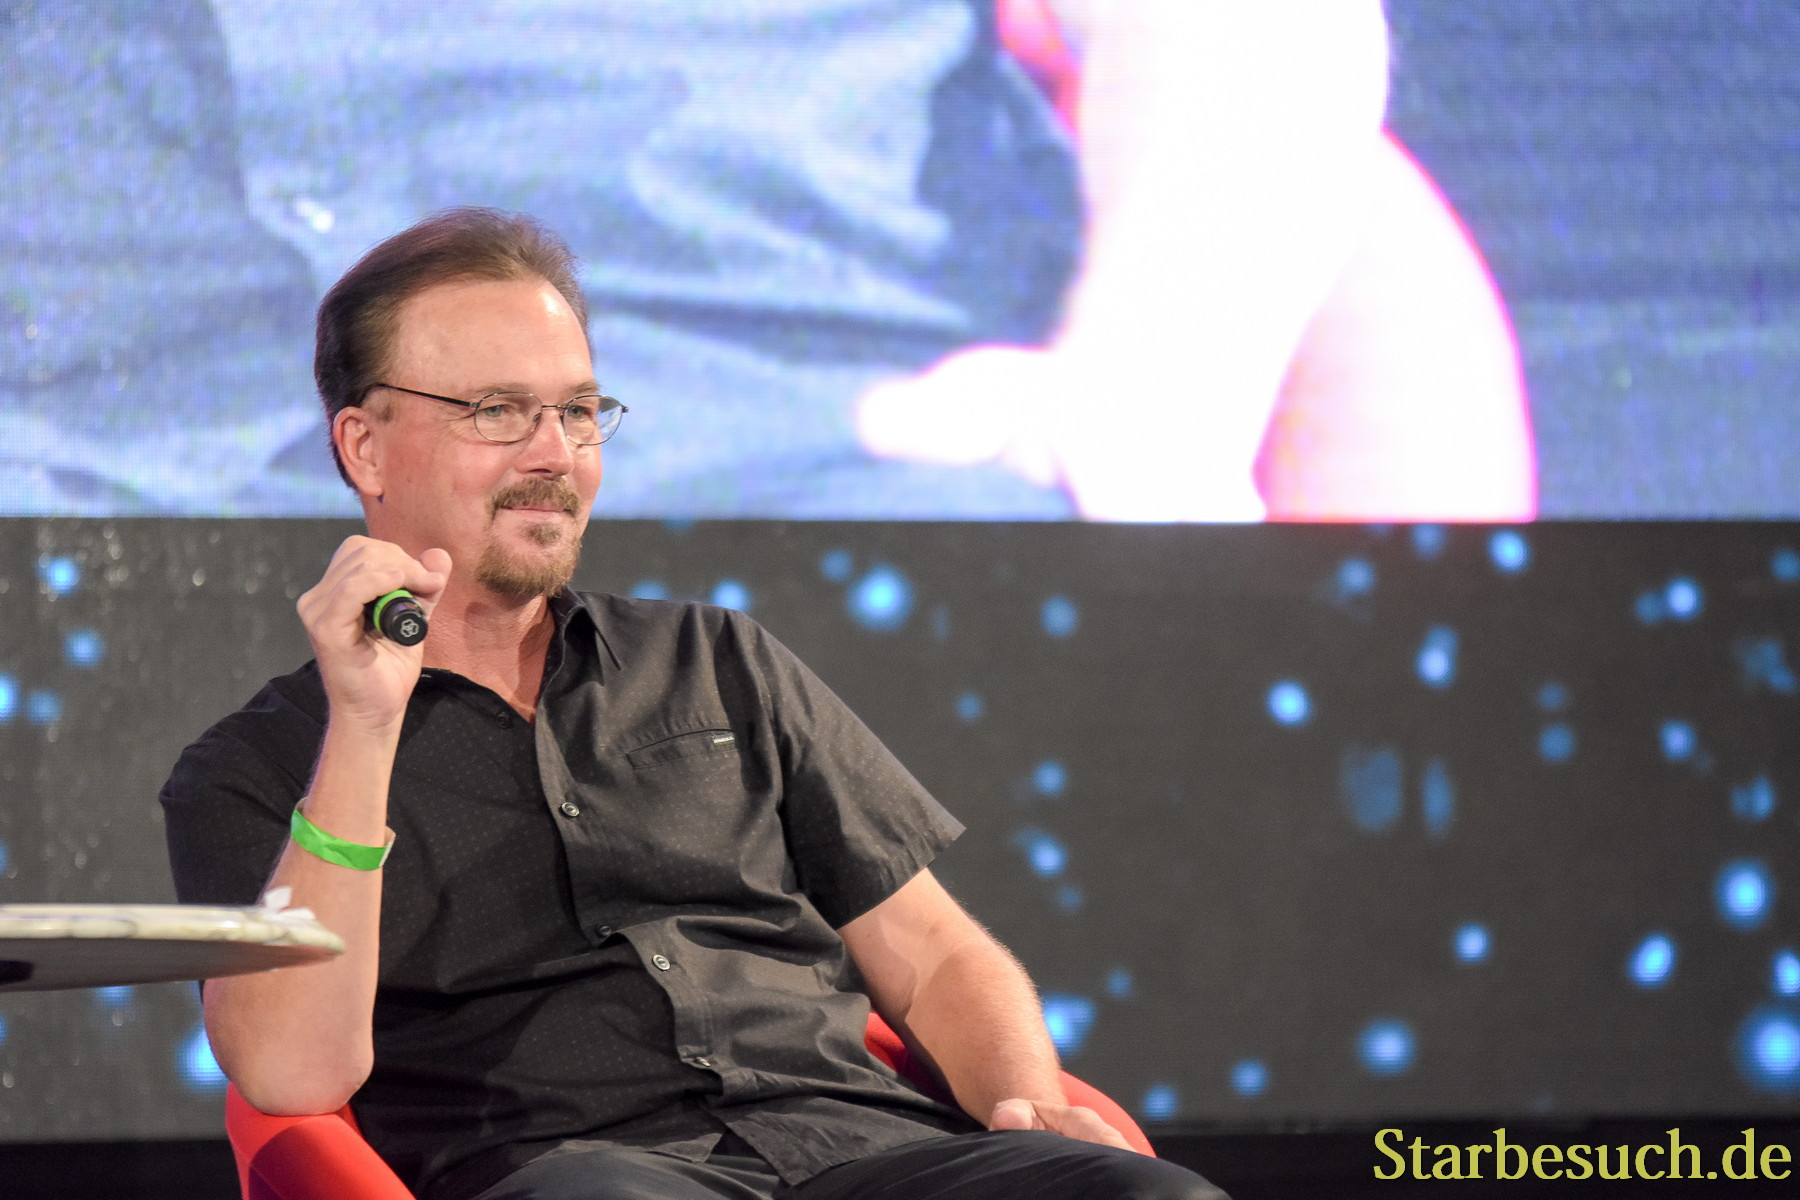 September 2nd, 2017. Mannheim, Germany. Christopher Doohan, son of James Doohan, at his panel at Startopia. Star Trek Actors and Trekkies get together at Startopia Convention 2017 in Mannheim, Germany